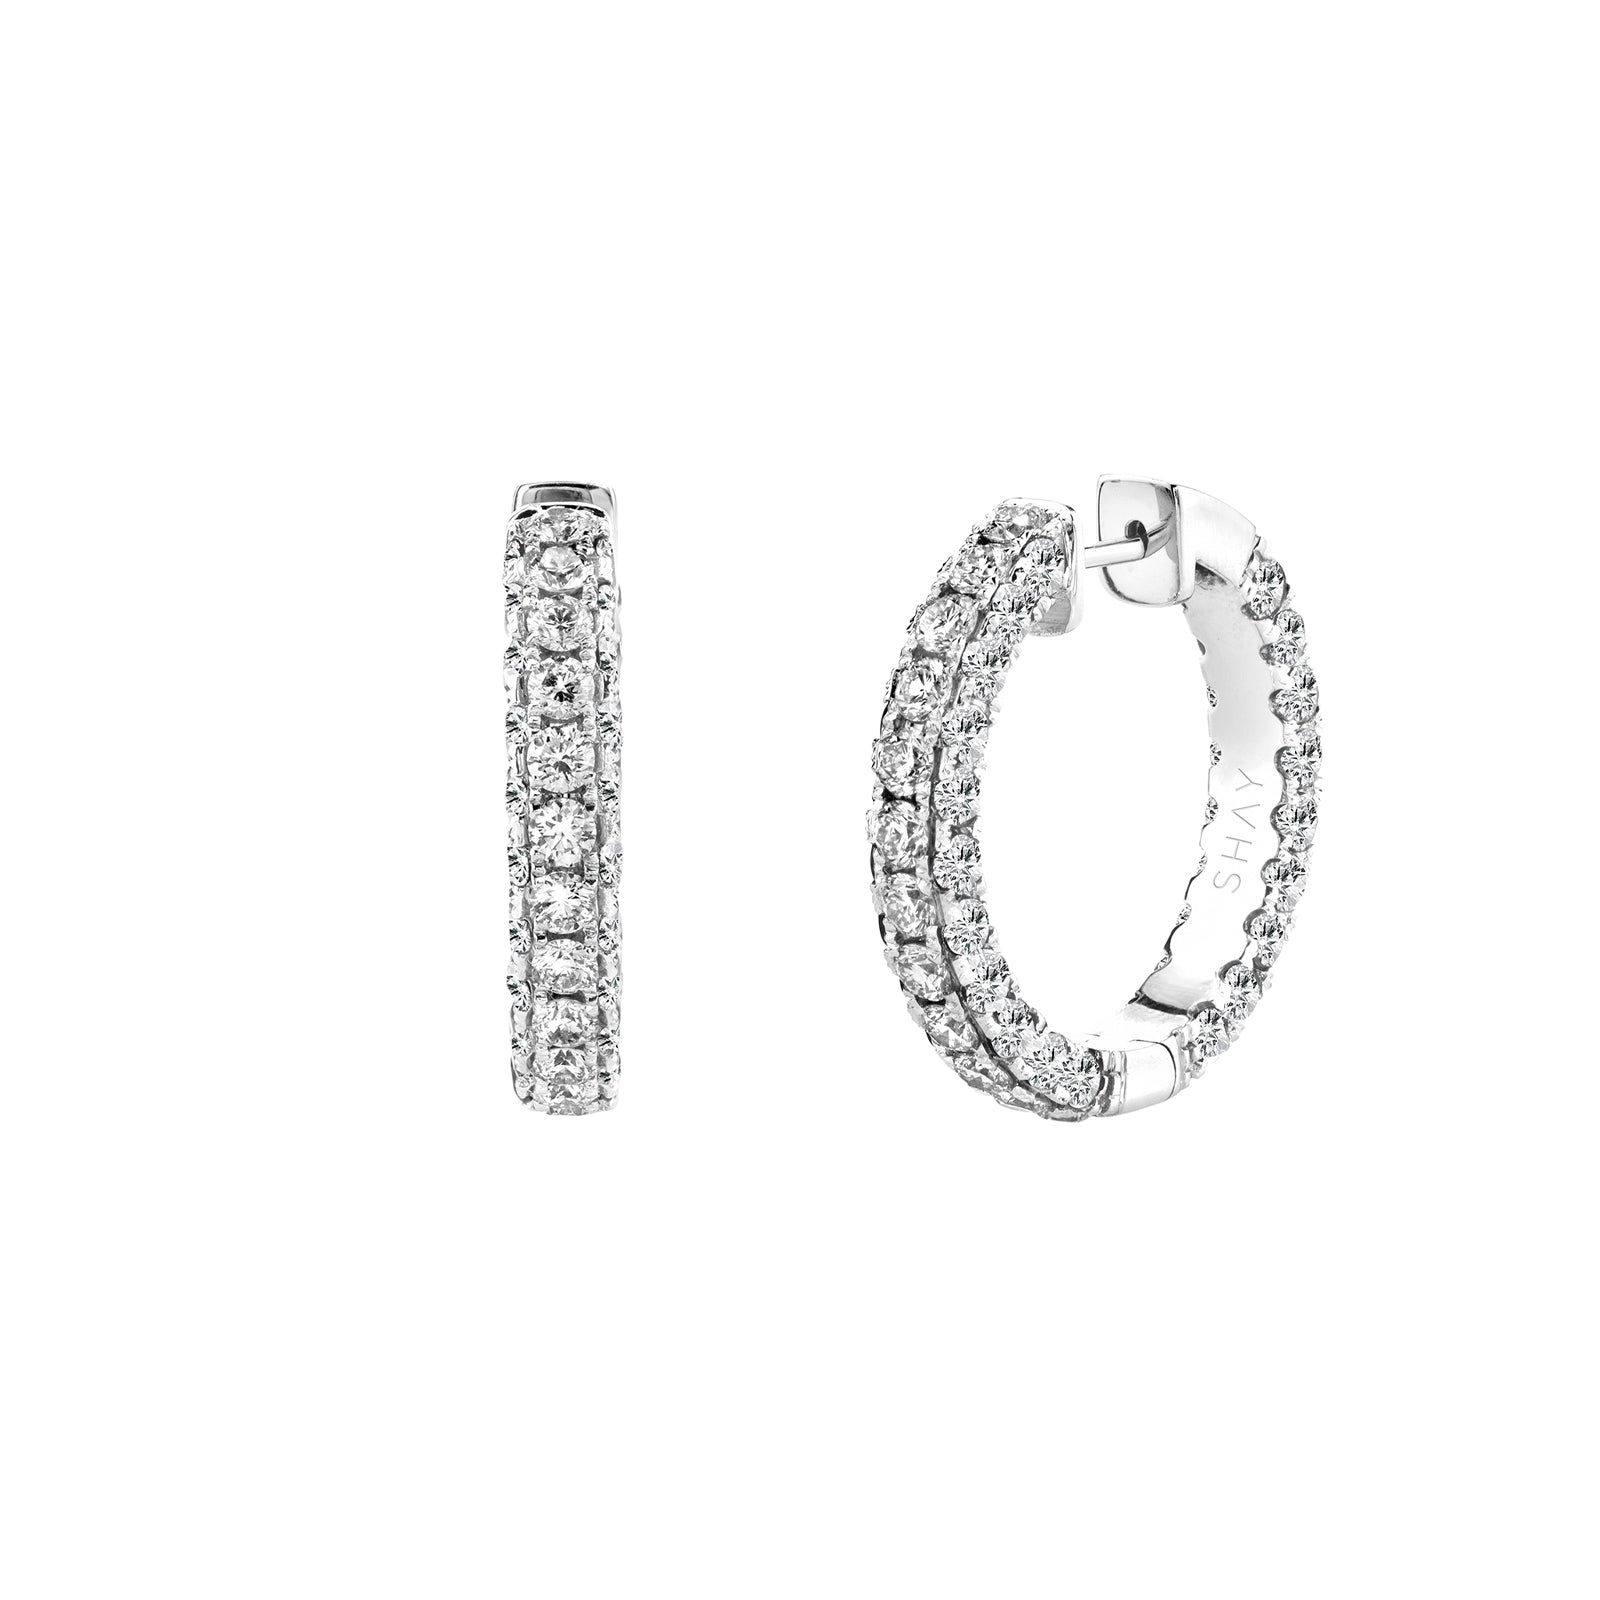 Shay 3 Sided Diamond Hoops - White Gold - Earrings - Broken English Jewelry